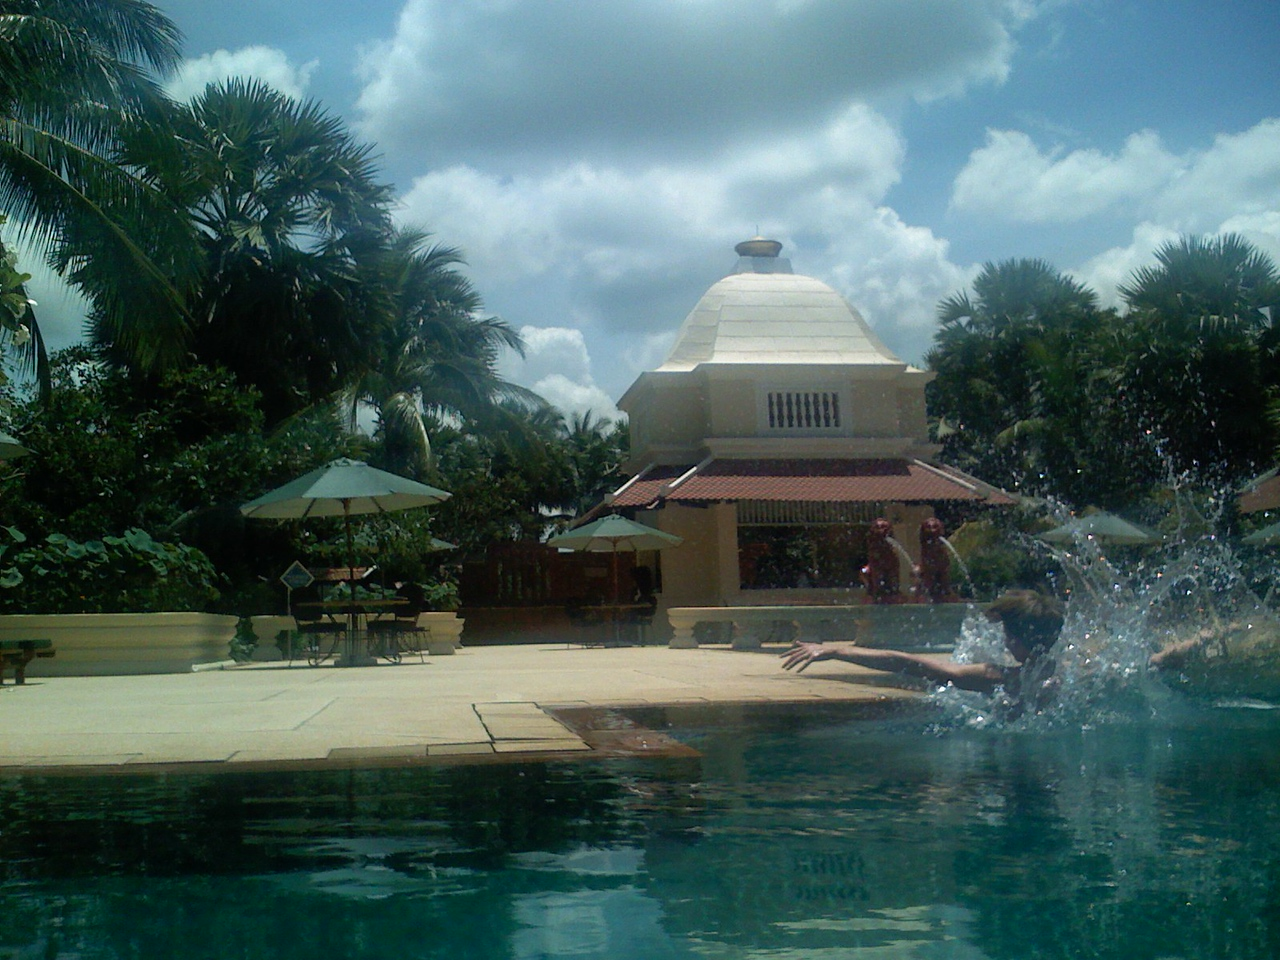 Kyle Kolb seen mid-splash after cartwheeling into the pool at the Raffles in Cambodia.  We dared him to do it.